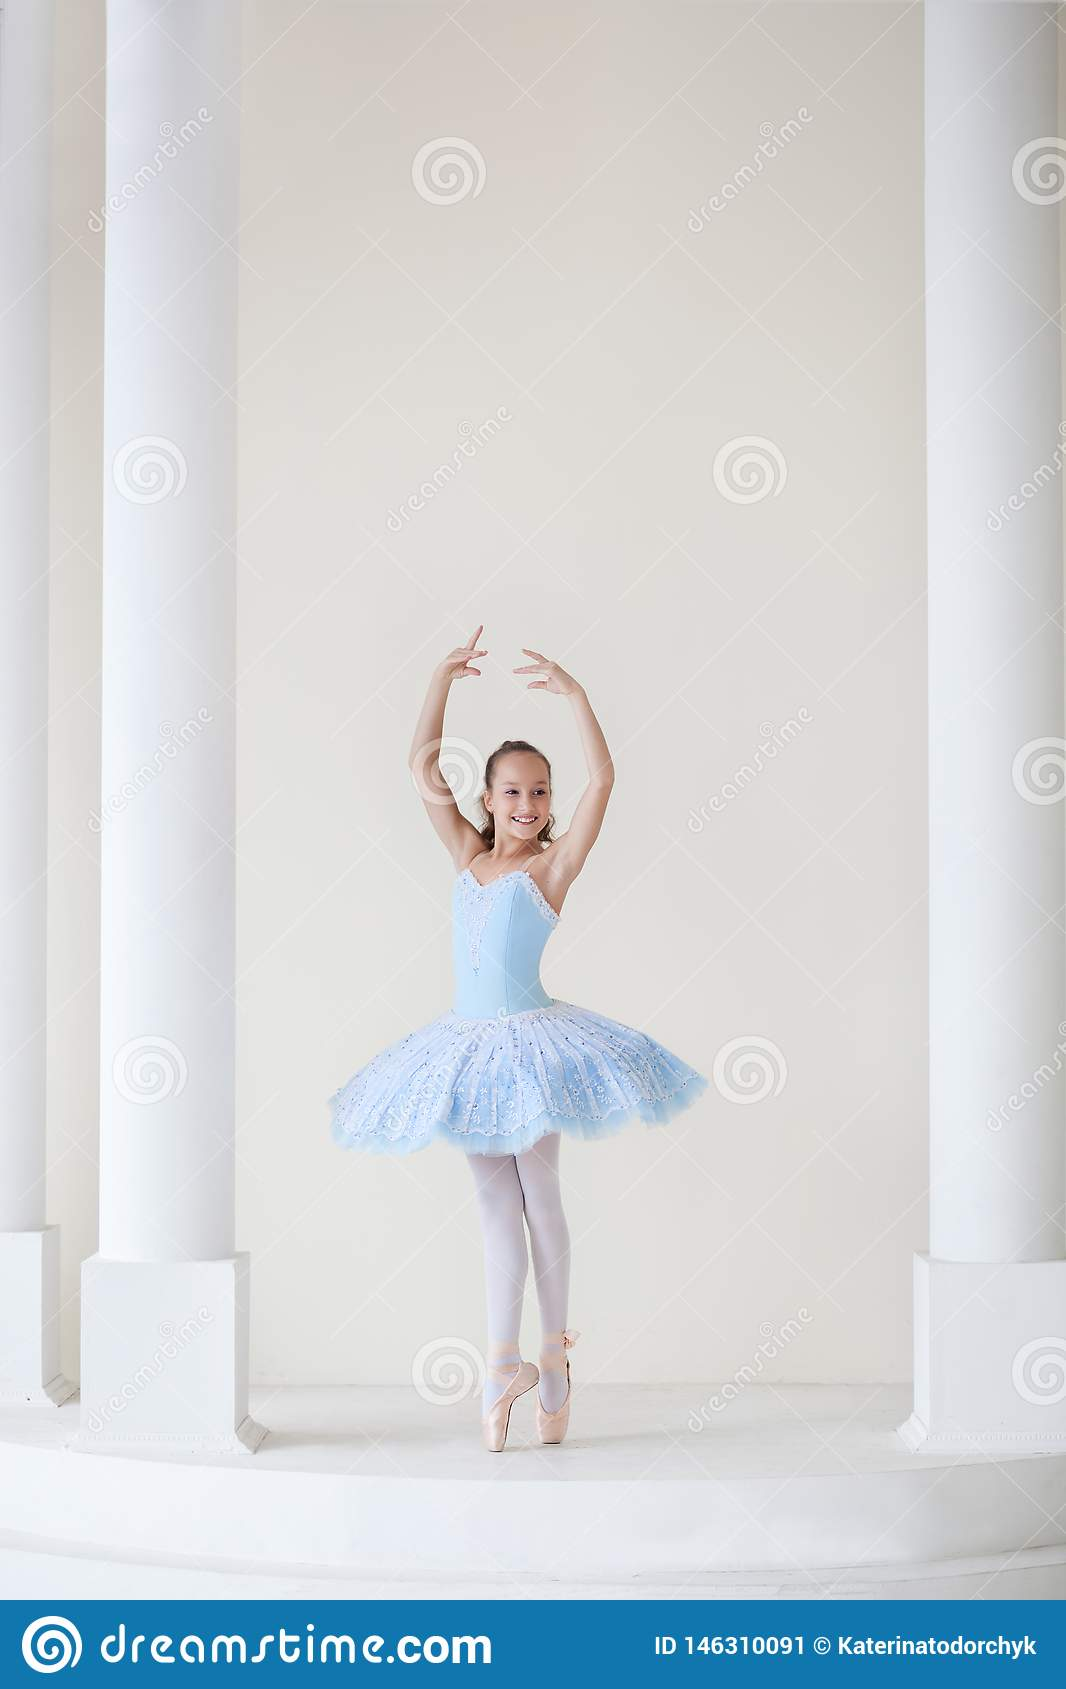 A Cute Ballerina In Ballet Costume And In Pointe Dances Near The Mirror Girl In The Dance Class The Girl Is Studying Ballet Bal Stock Image Image Of Dancer Cute 146310091